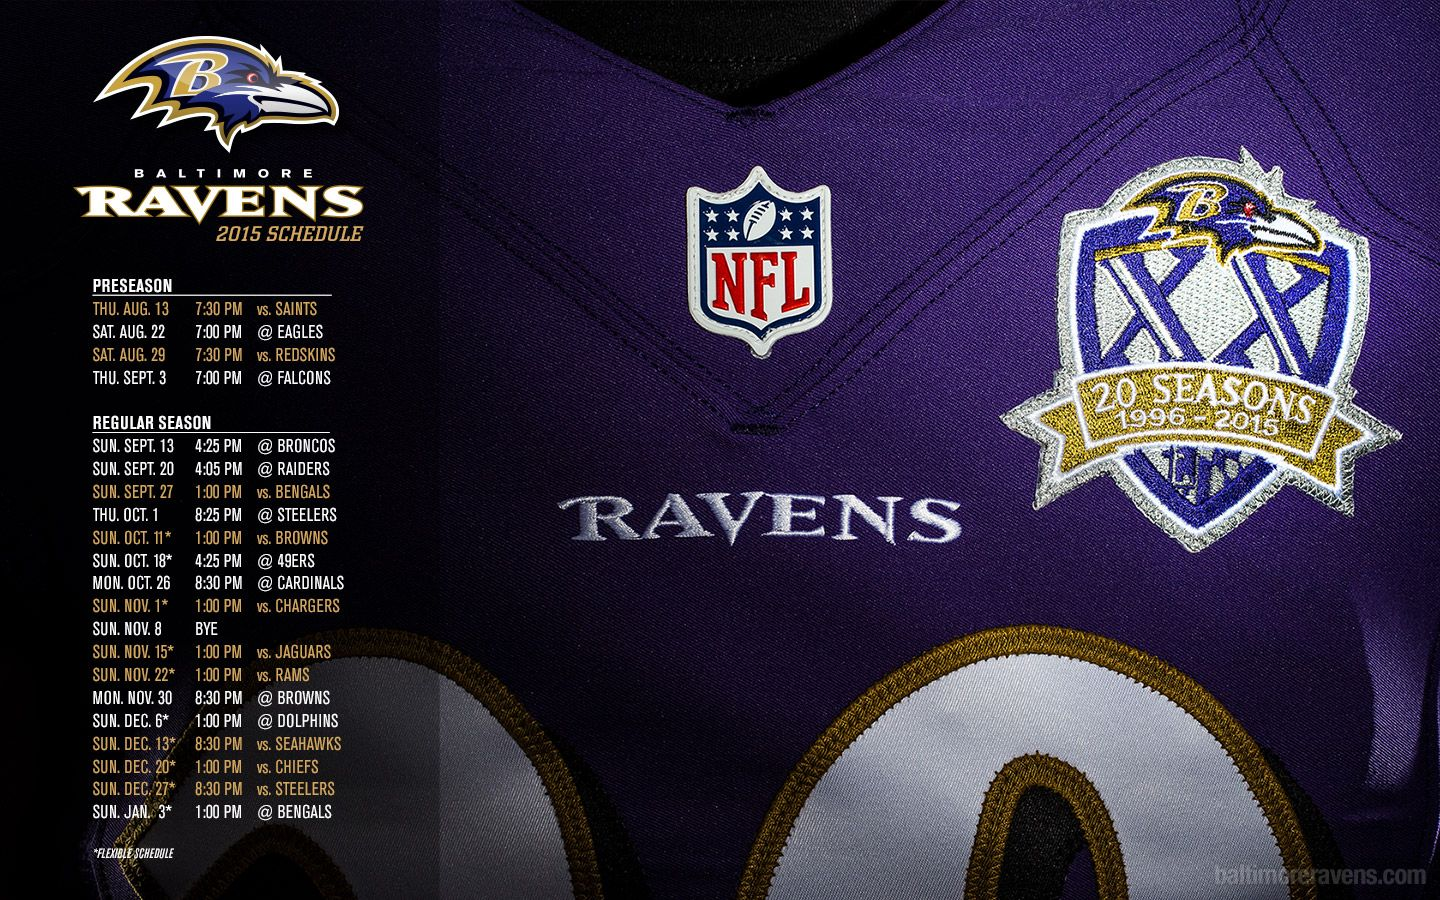 Baltimore Ravens Image download HD the digitalimagemakerworld 1440x900